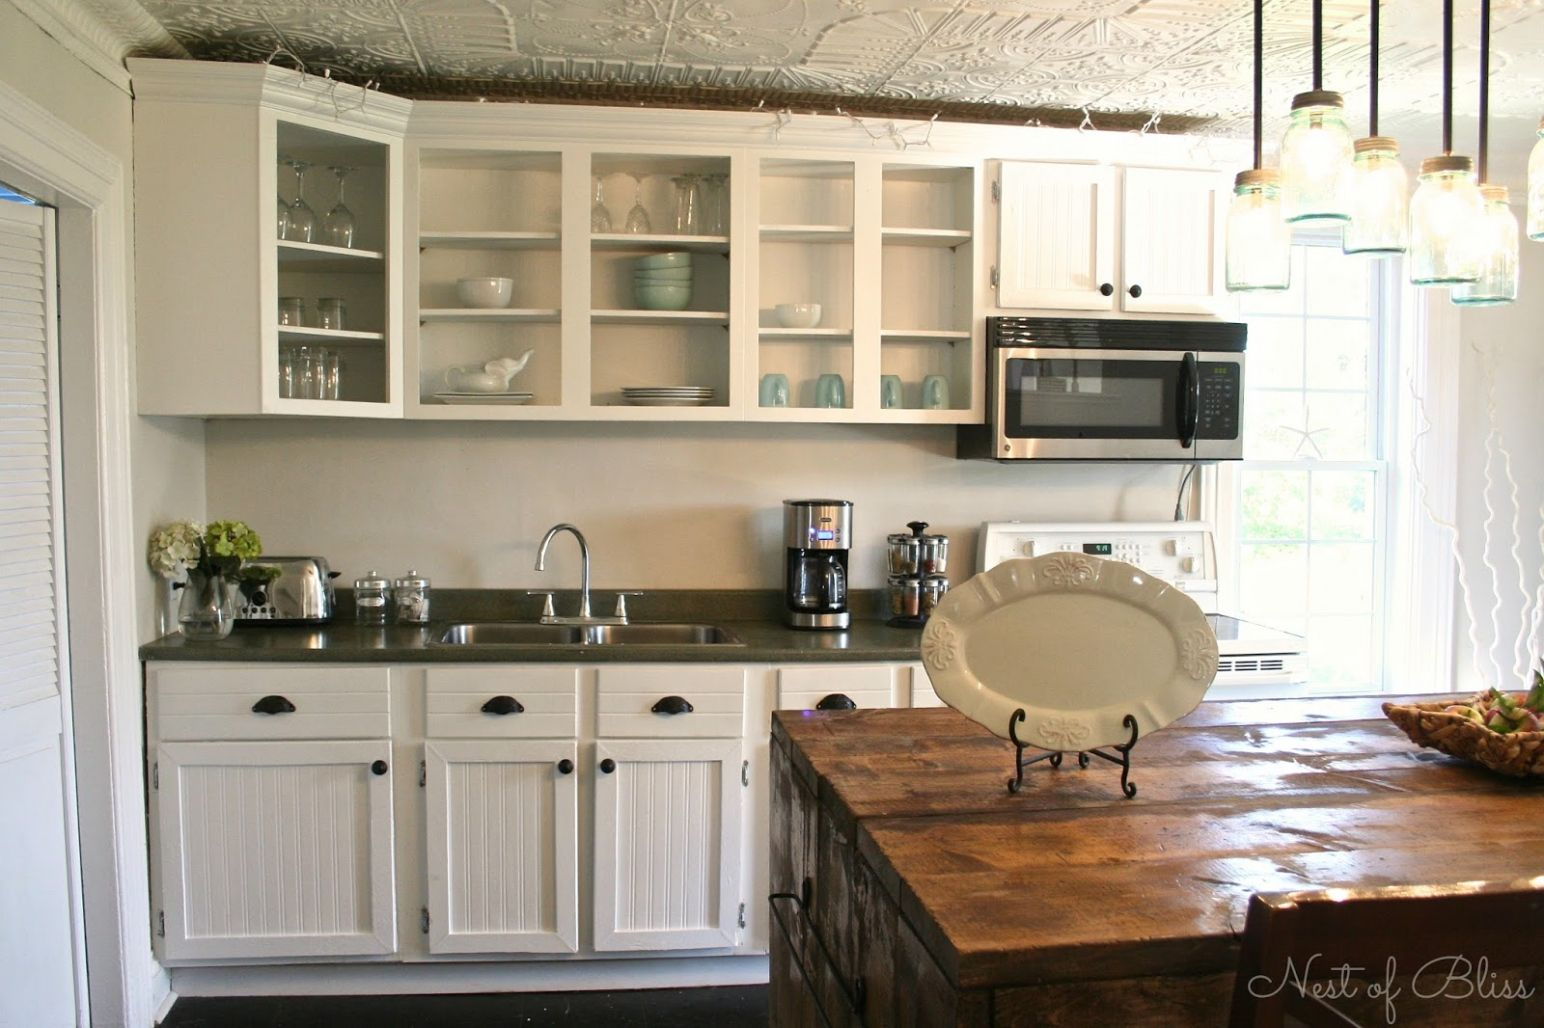 100 Diy Kitchen Cabinet Makeover Diy Kitchen Countertop Ideas Check More At Http Cacophonouscreations Com Diy Kitchen Cabinet Makeover